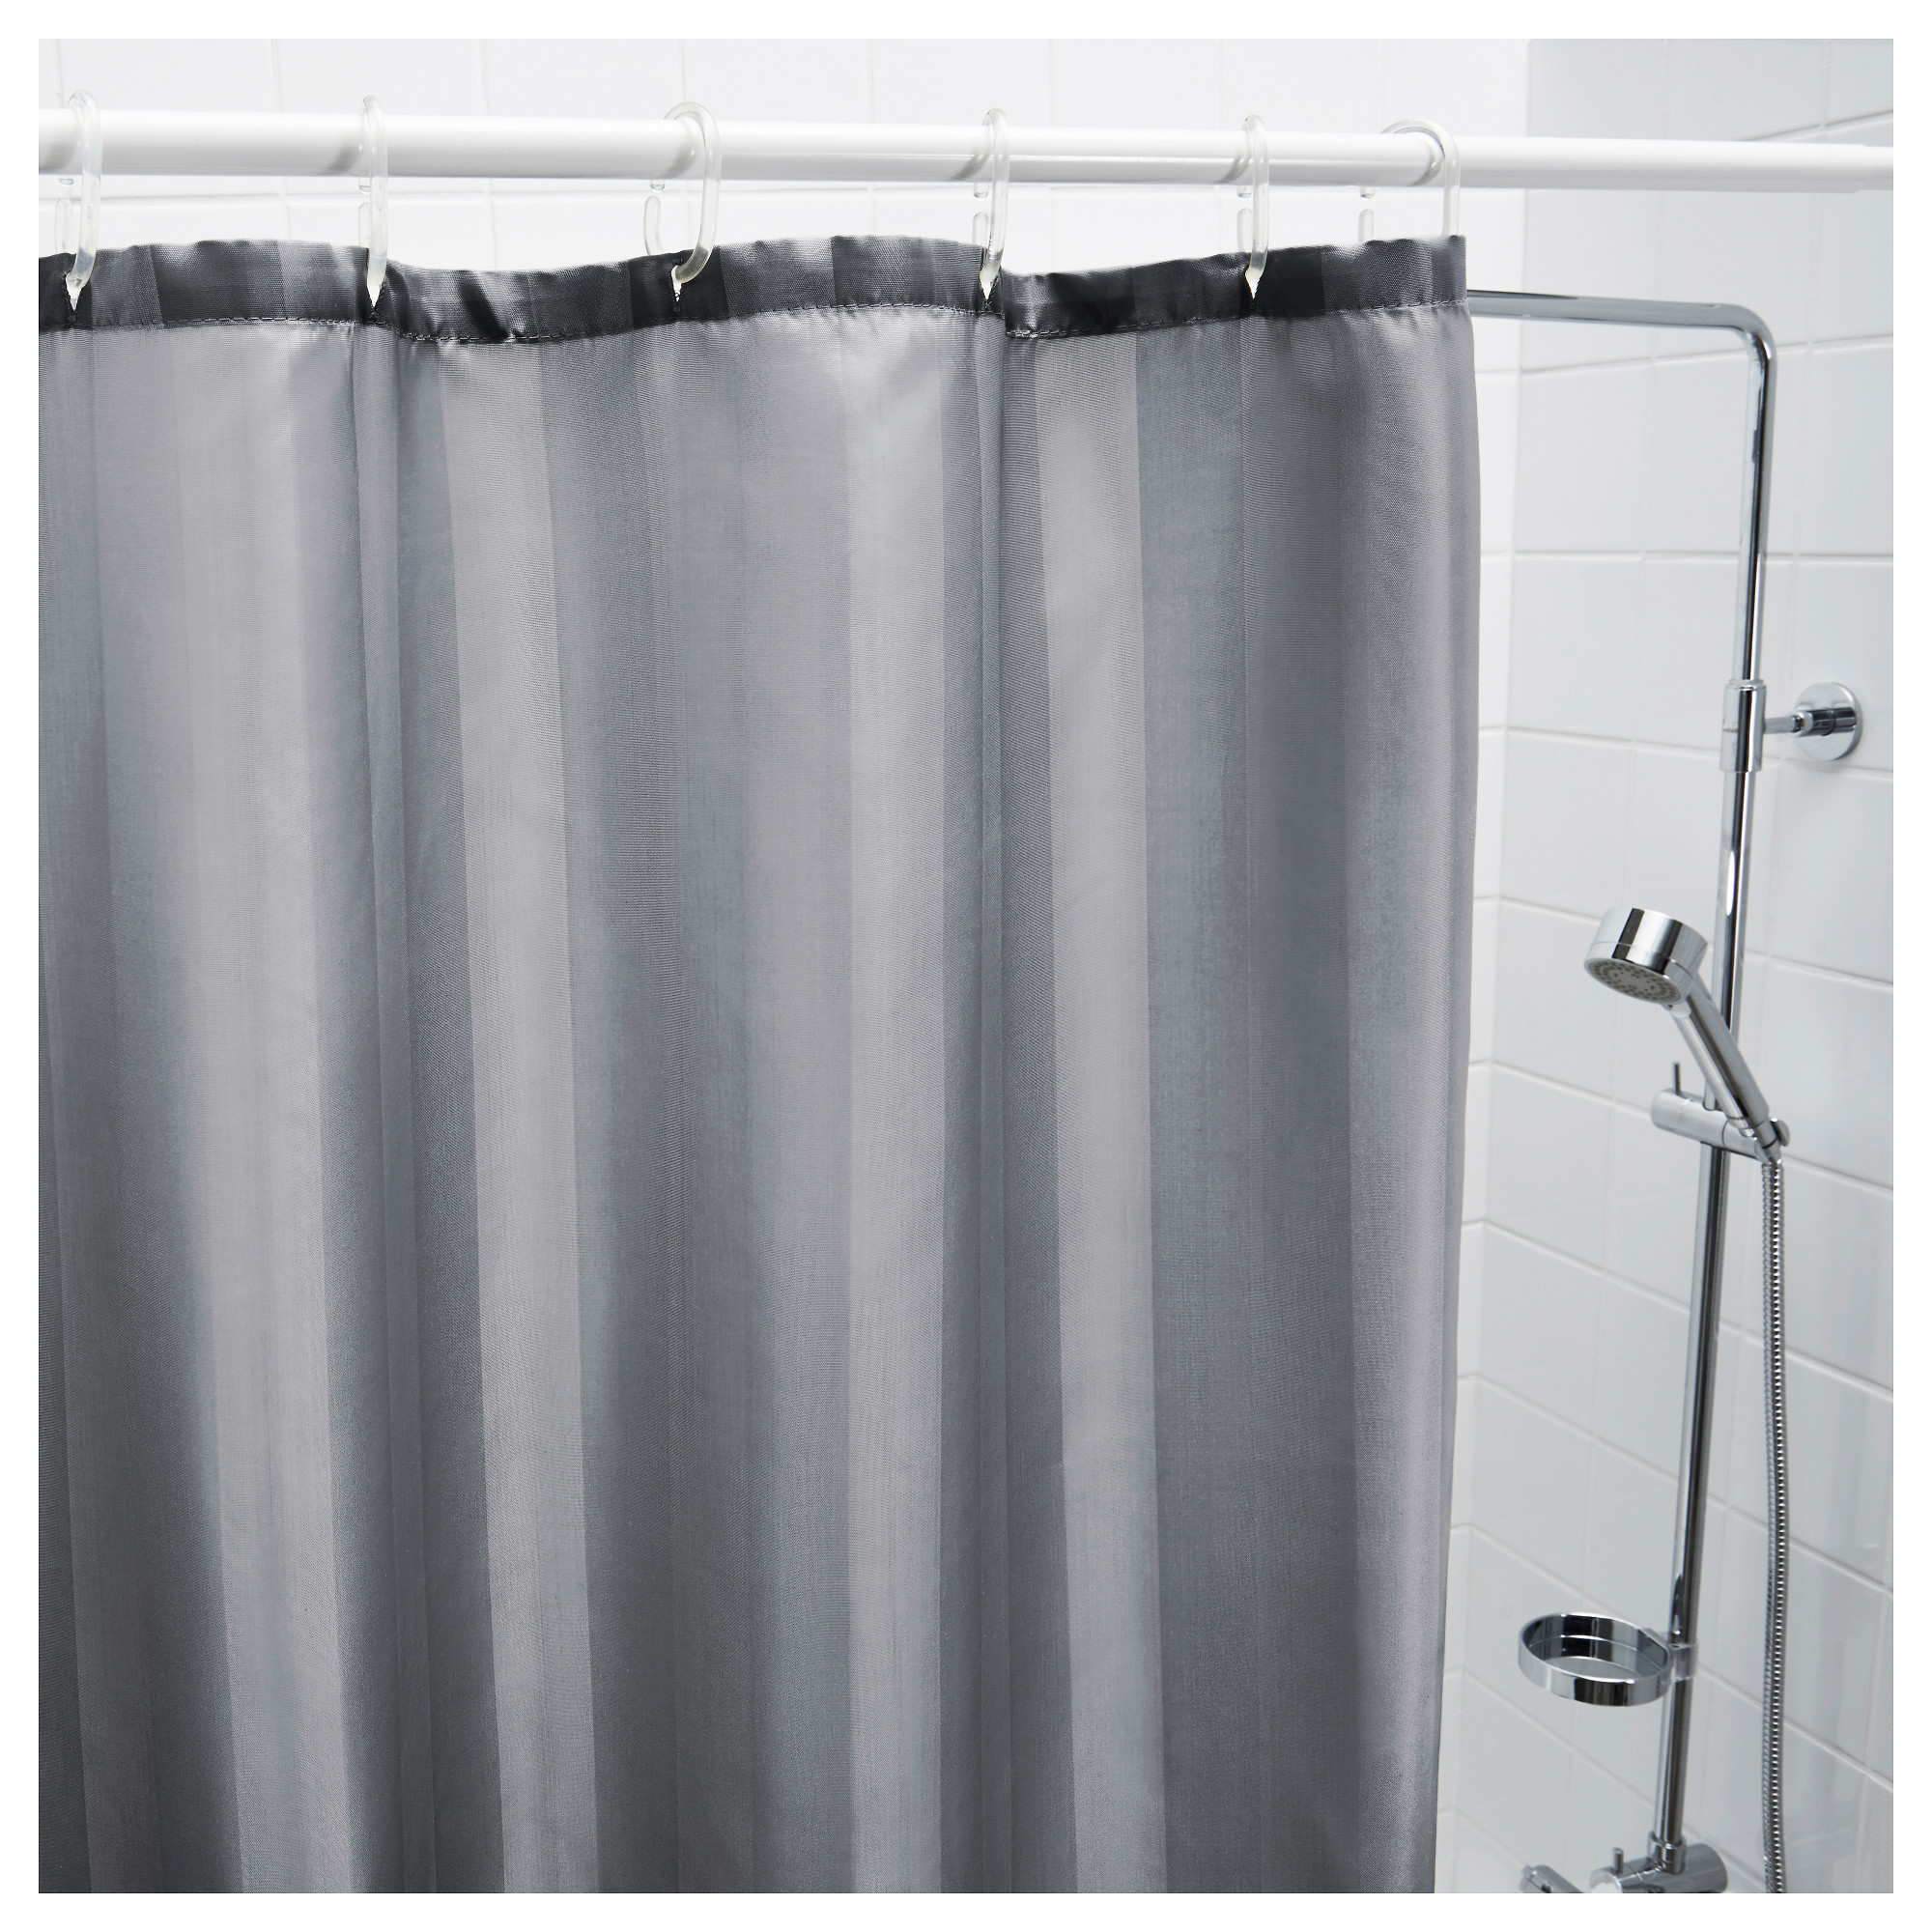 white and silver shower curtain.  SALTGRUND Shower curtain IKEA